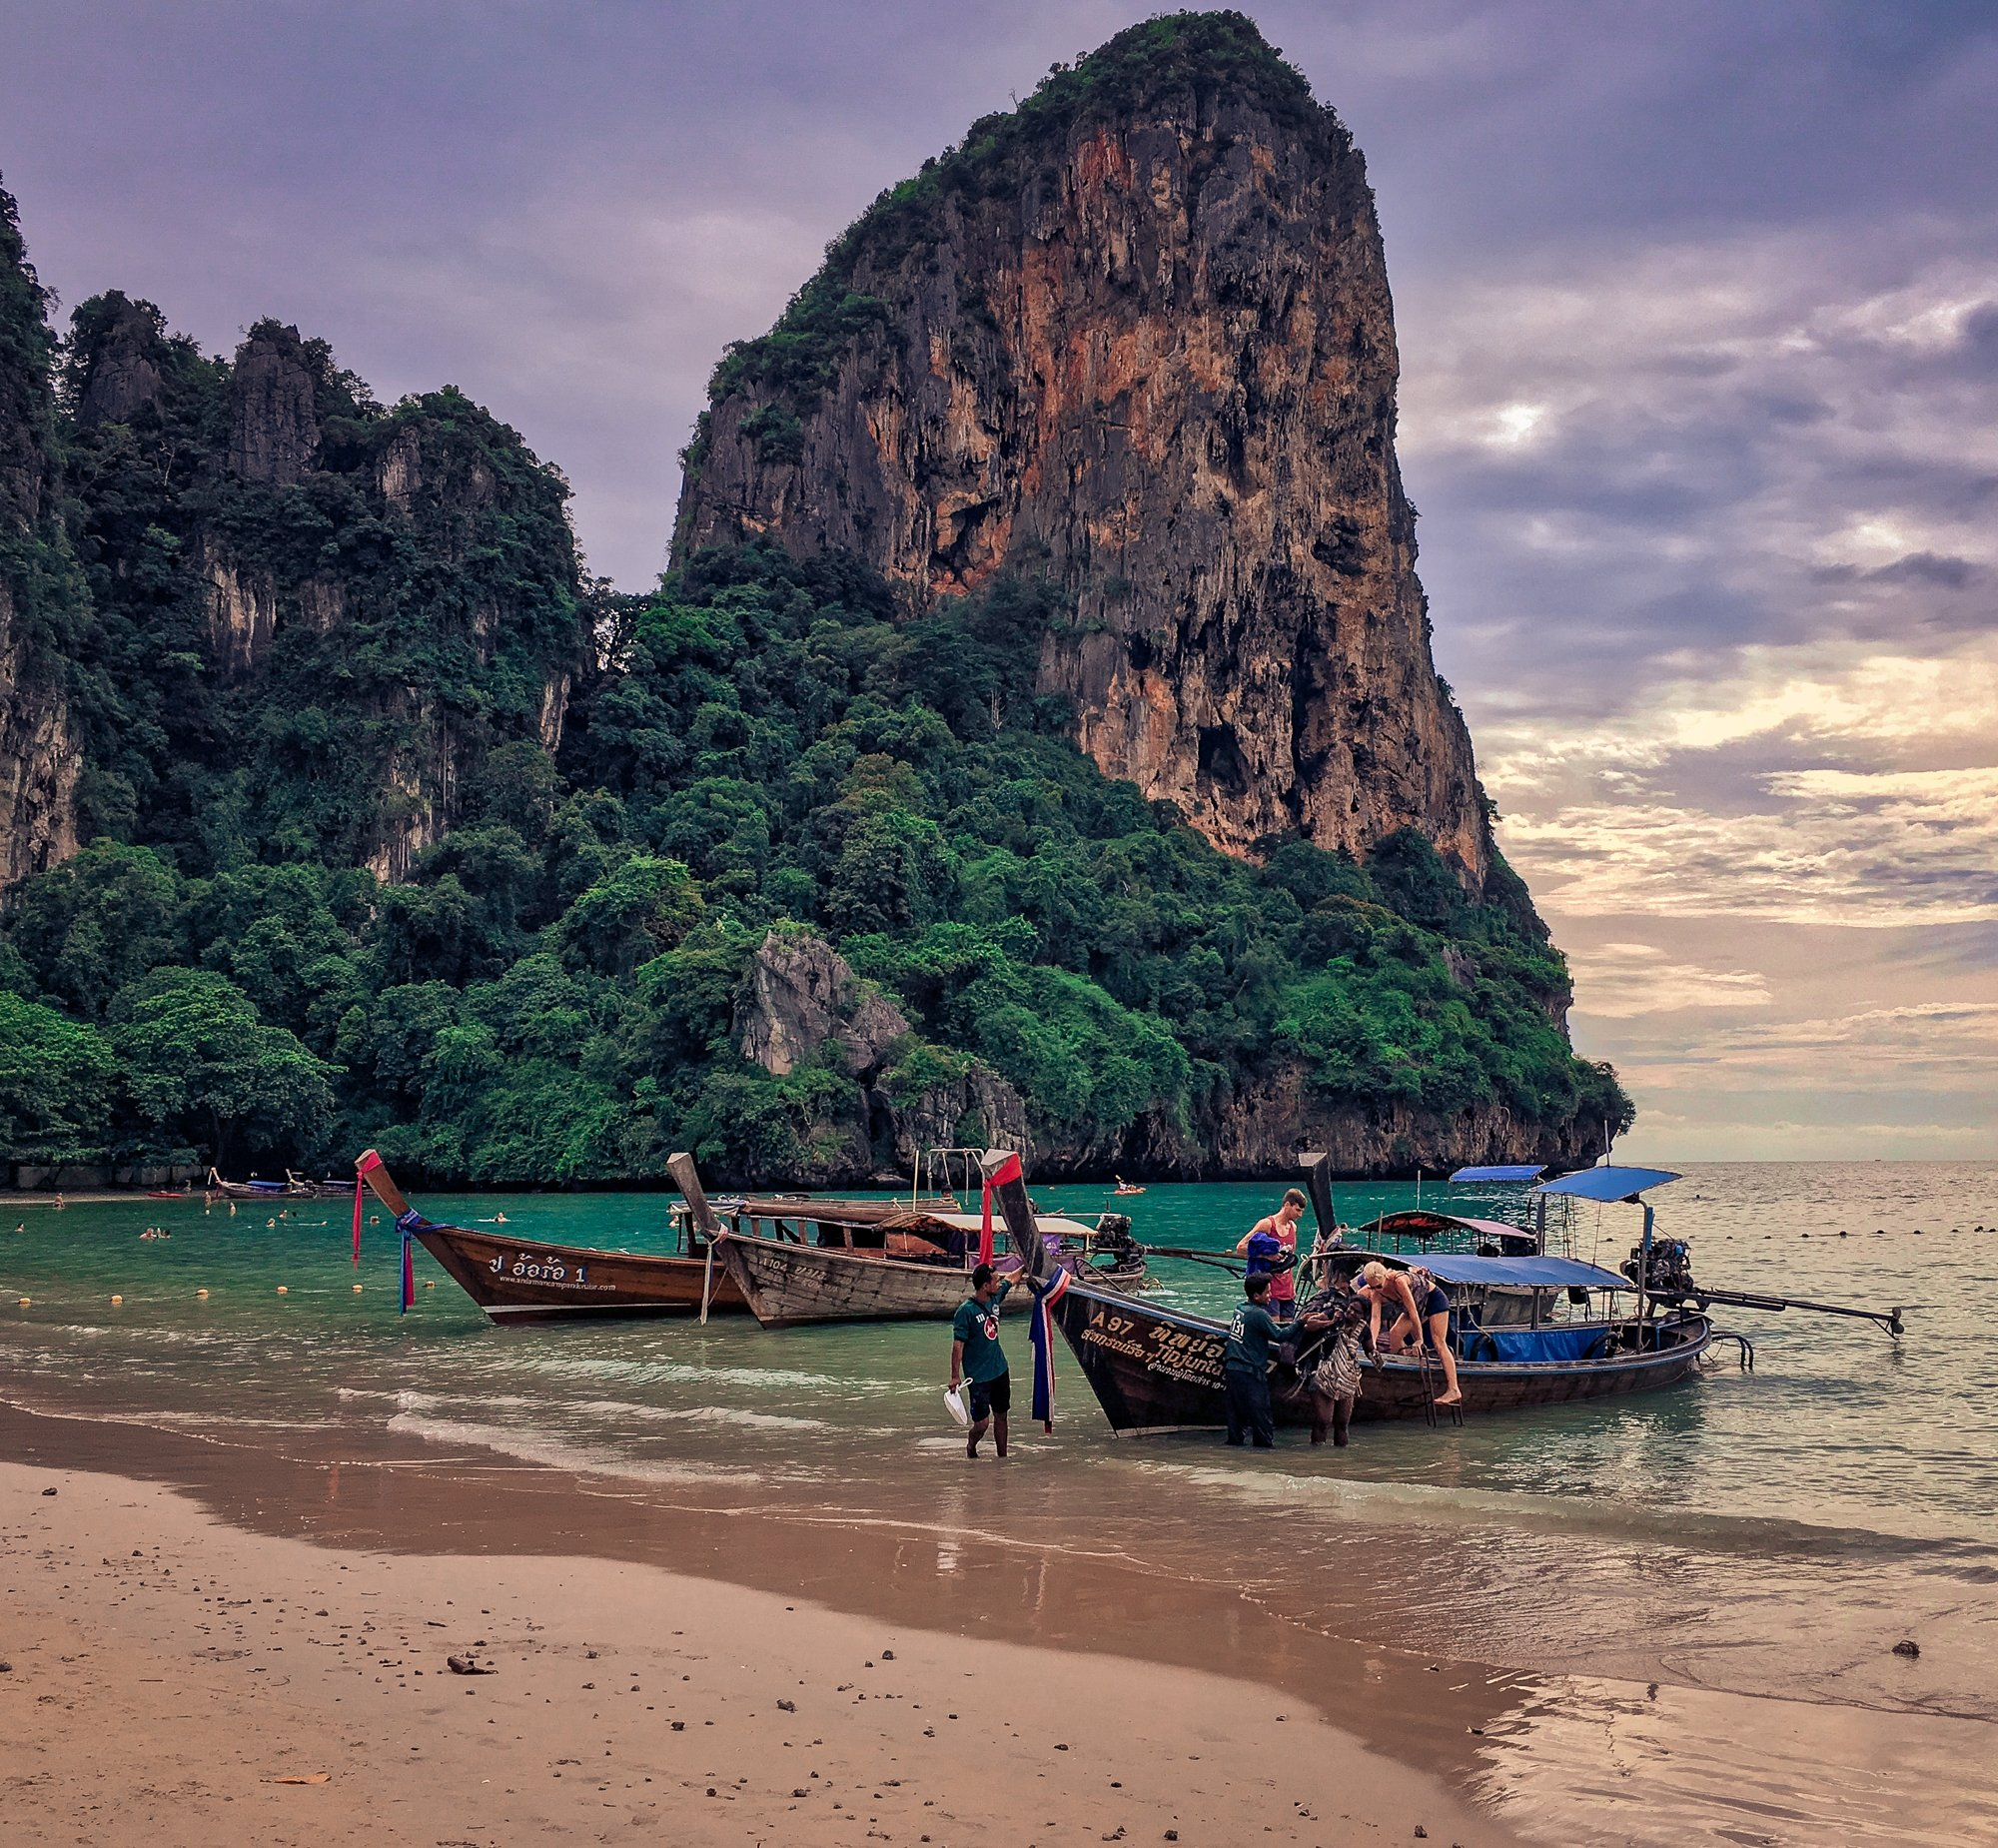 Longtail Boats and Karsts on Railay Beach Krabi Thailand